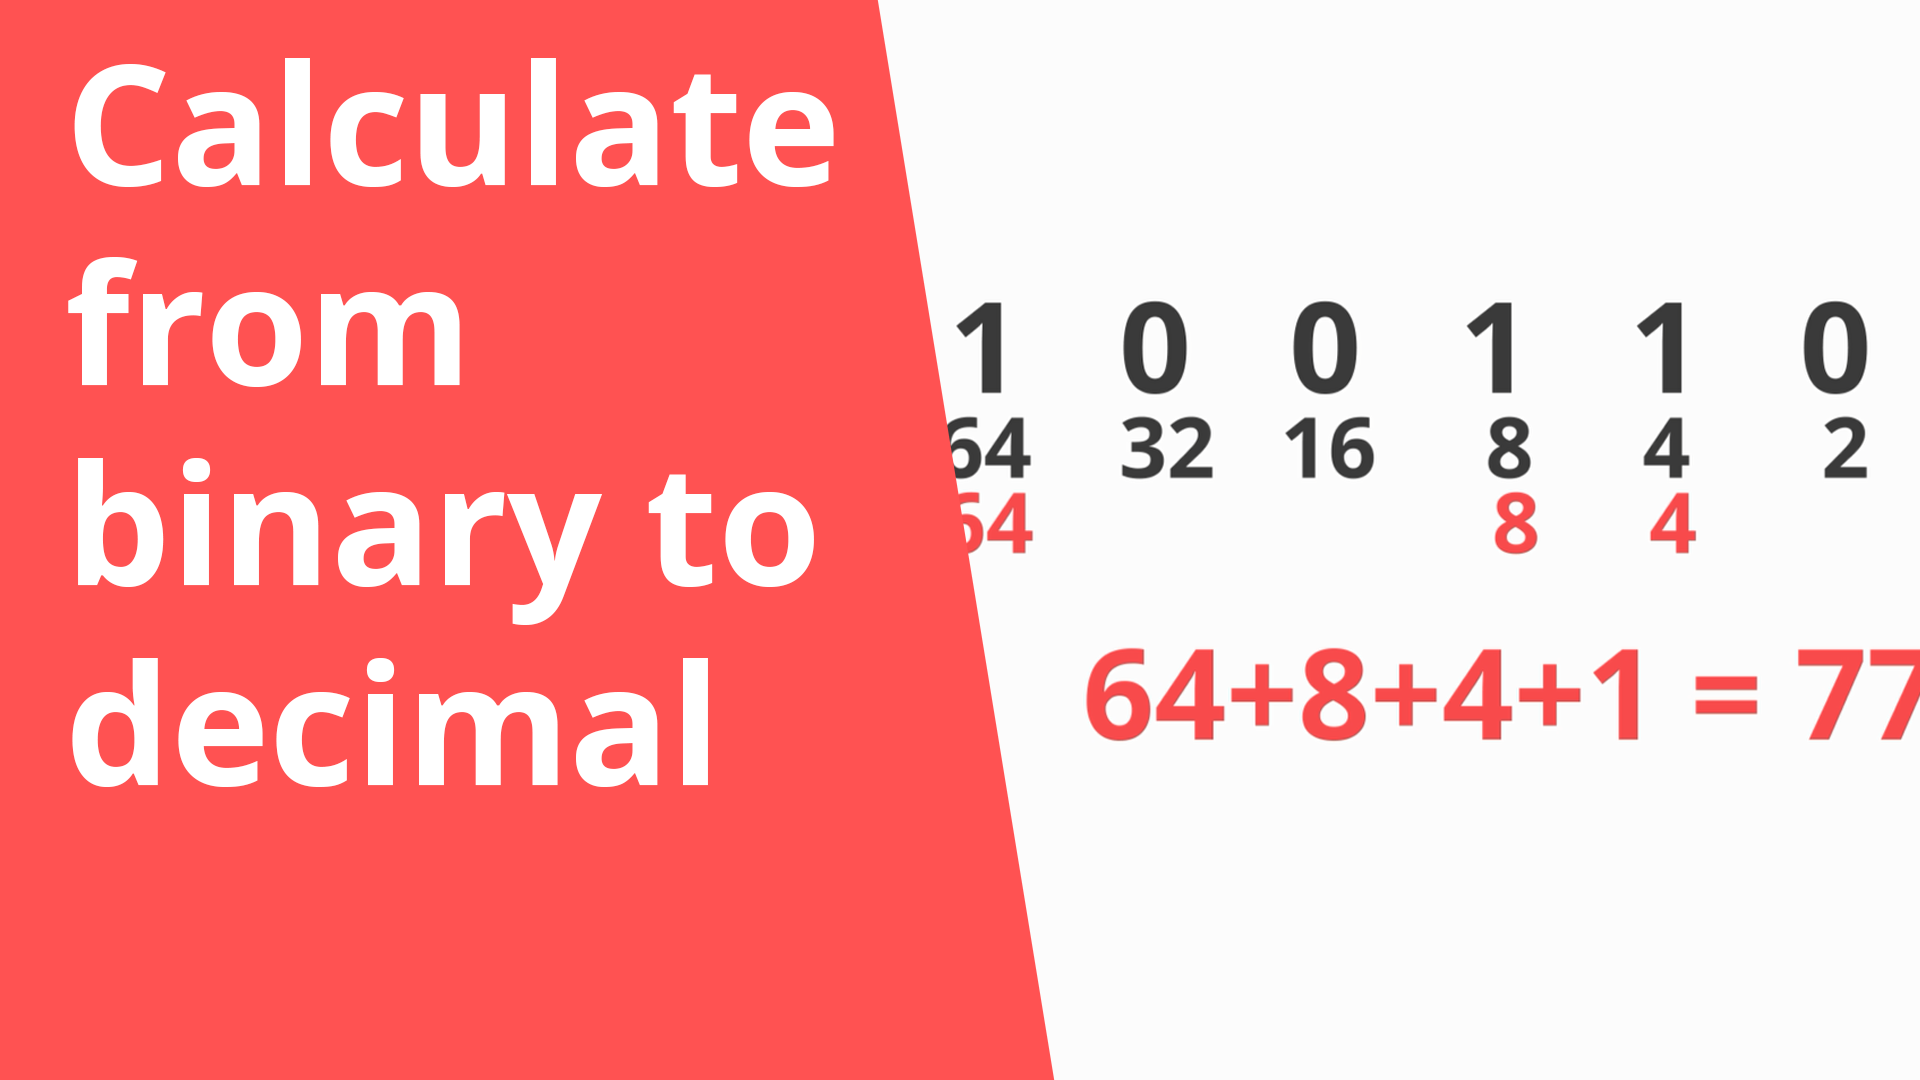 Calculate binary to decimal